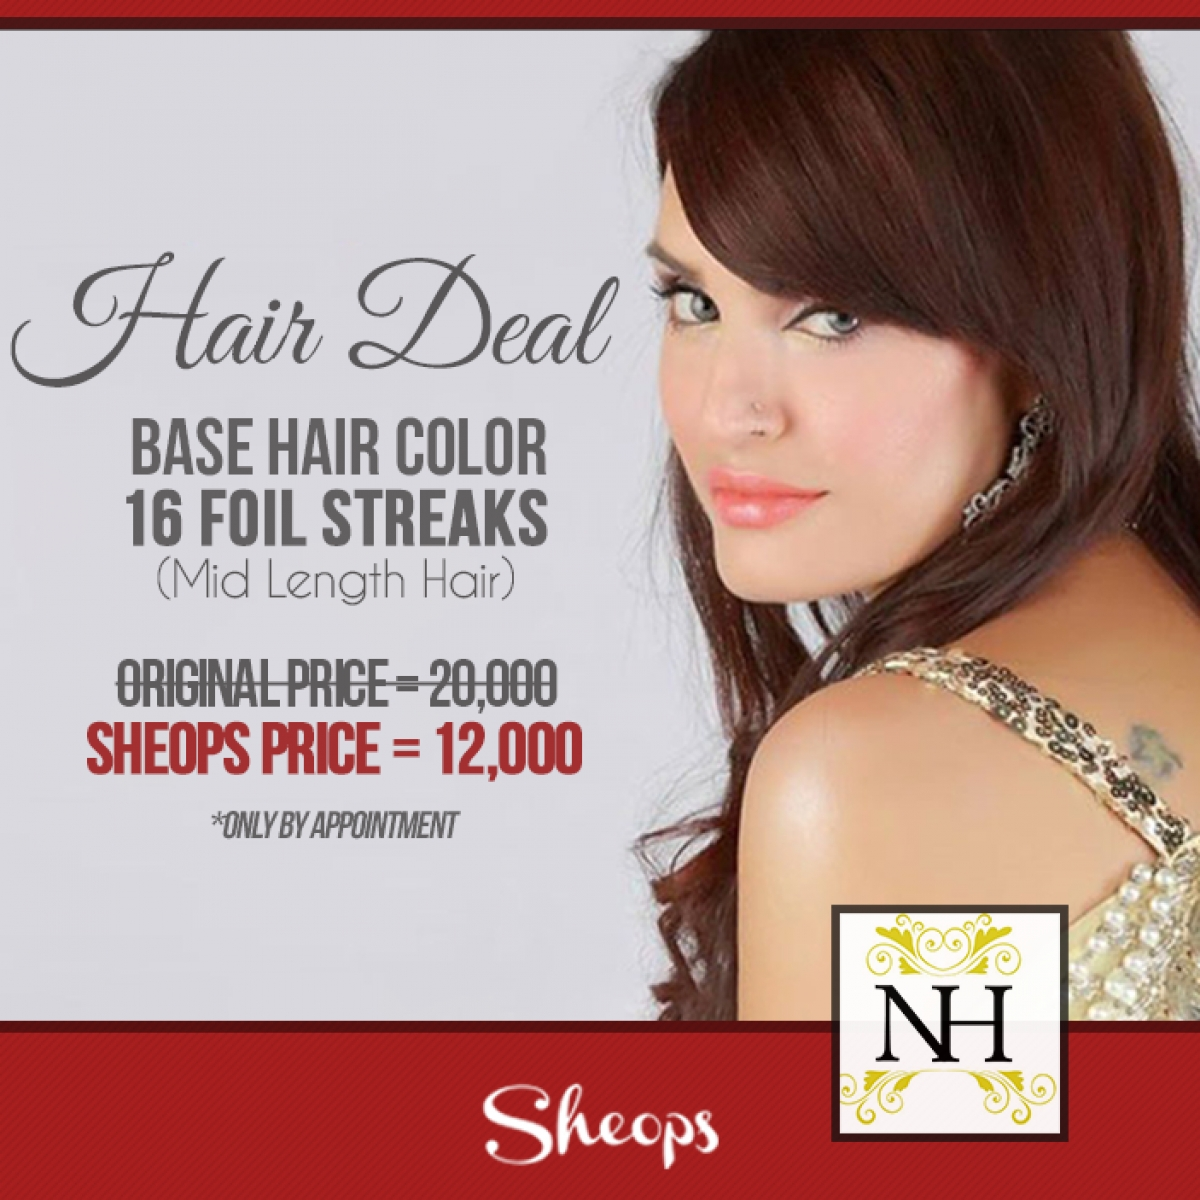 Buy Hair Deal By Nadia Hussain Salon & Clinic In Karachi - Sheops within Haircut Salon Deals In Karachi